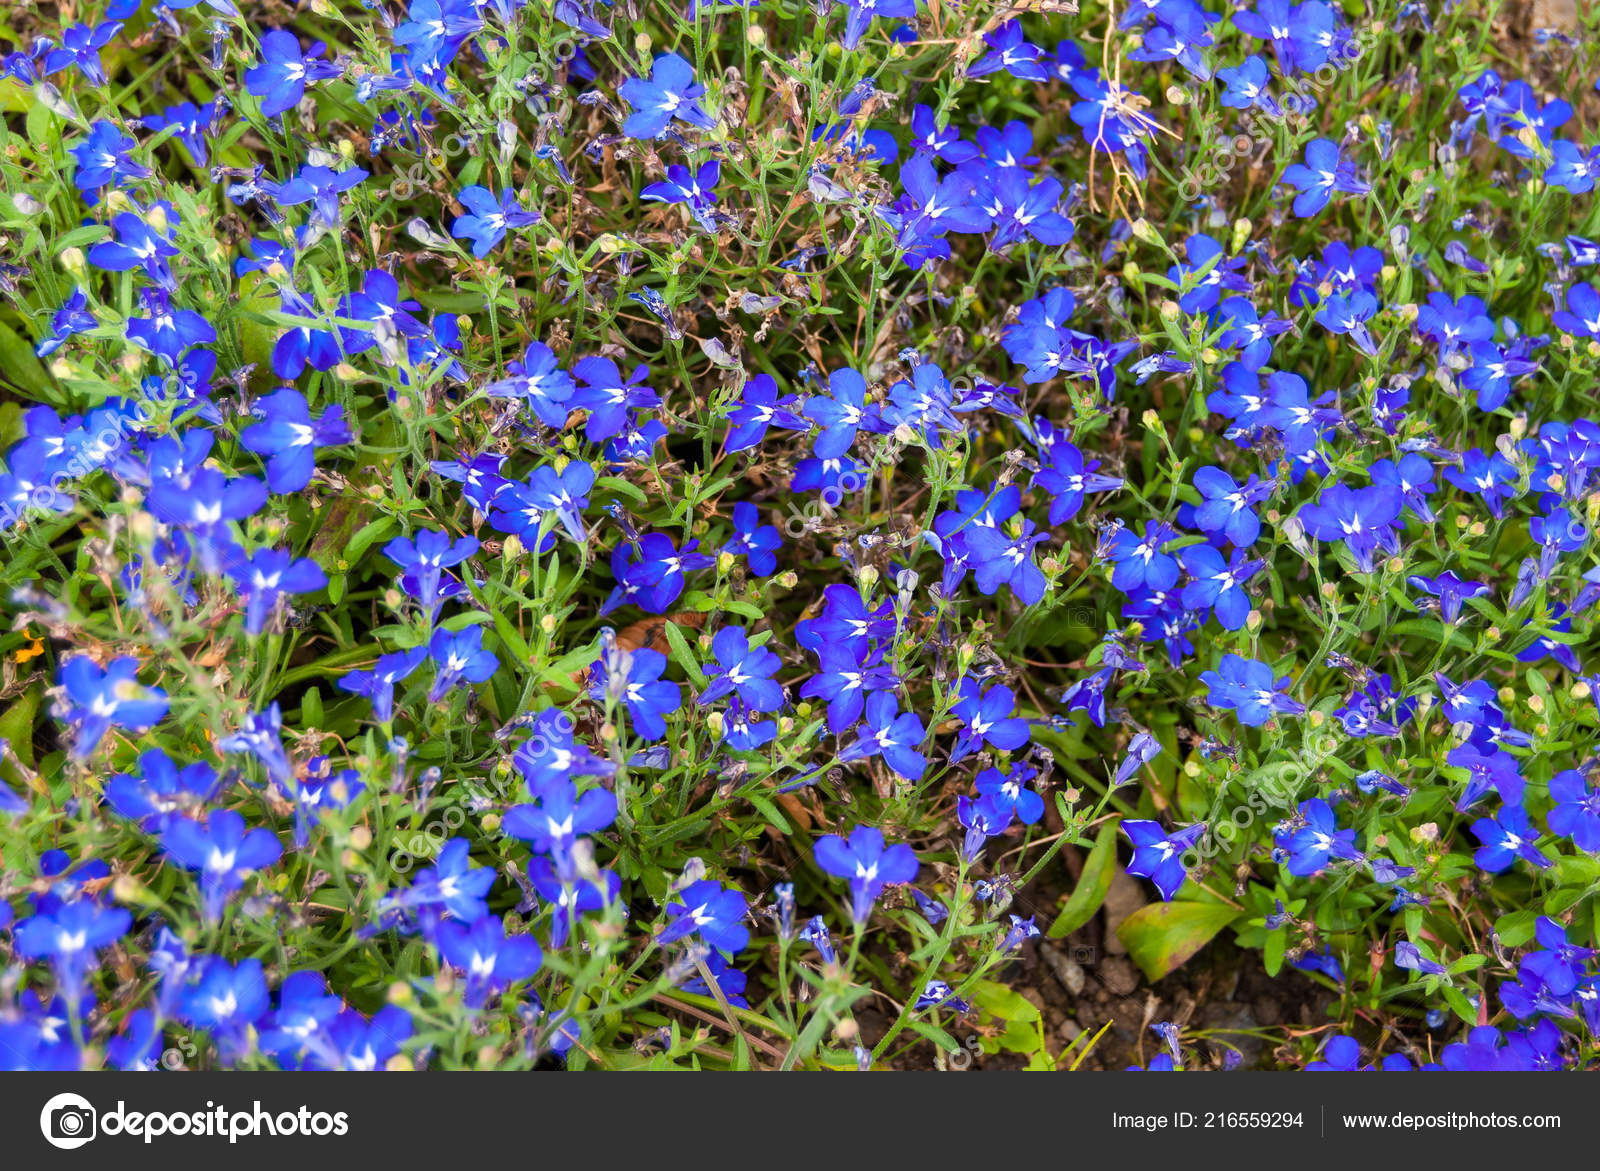 Blue Trailing Lobelia Flowers Or Edging Lobelia Alpine Herbs Of